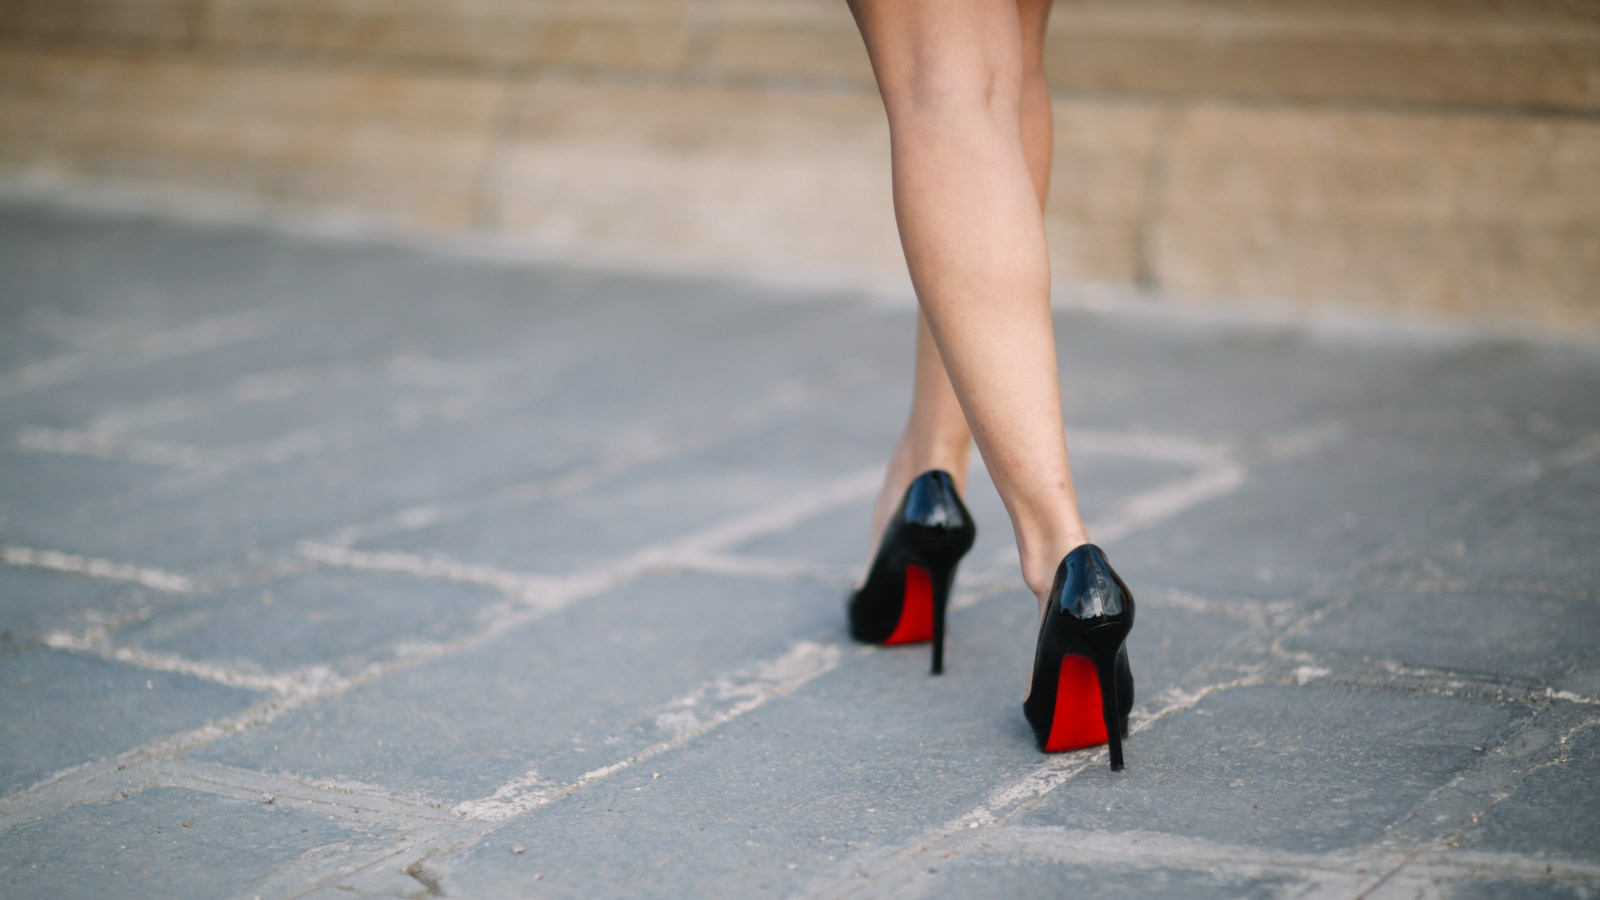 cf77c956cfe Flash Sale  Shop Christian Louboutin Heels Nearly 50% off Right Now!